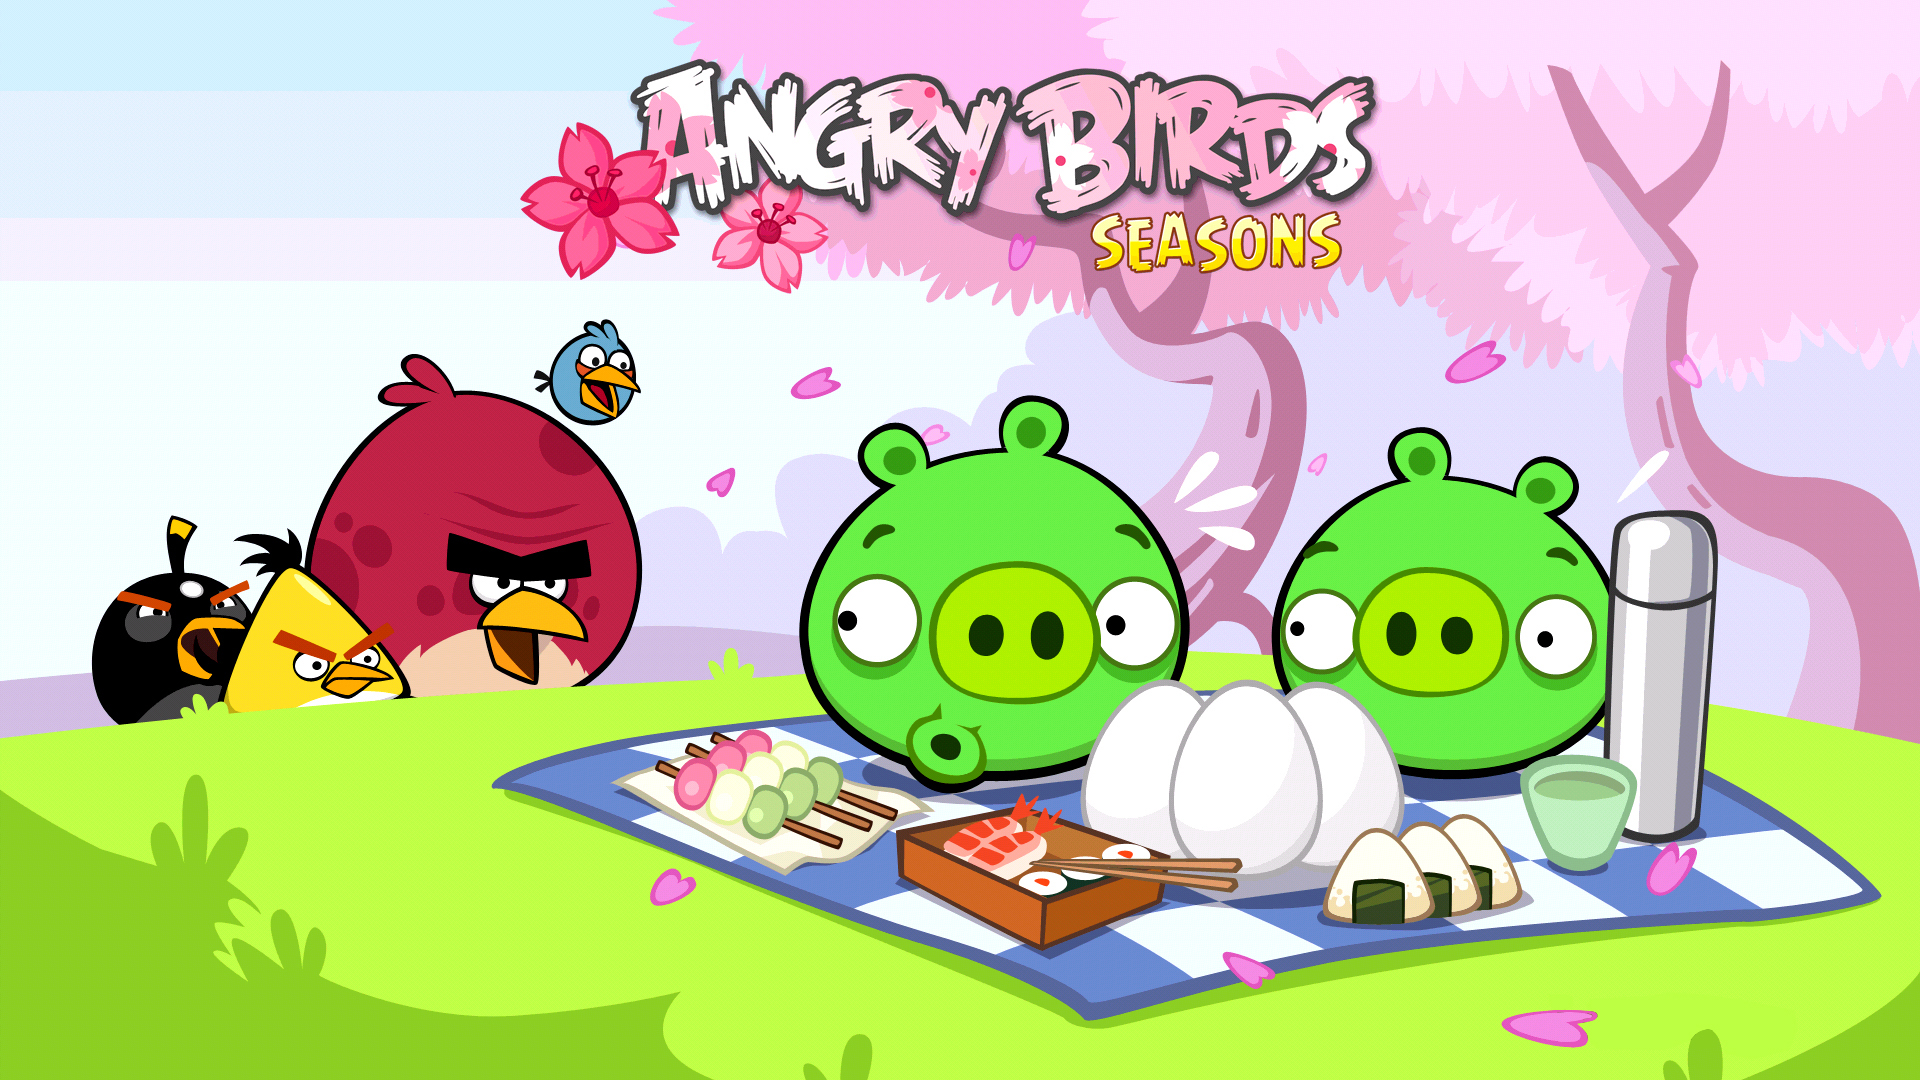 Angry birds seasons wallpaper 47329 1920x1080 px angry birds seasons wallpaper 47329 voltagebd Images